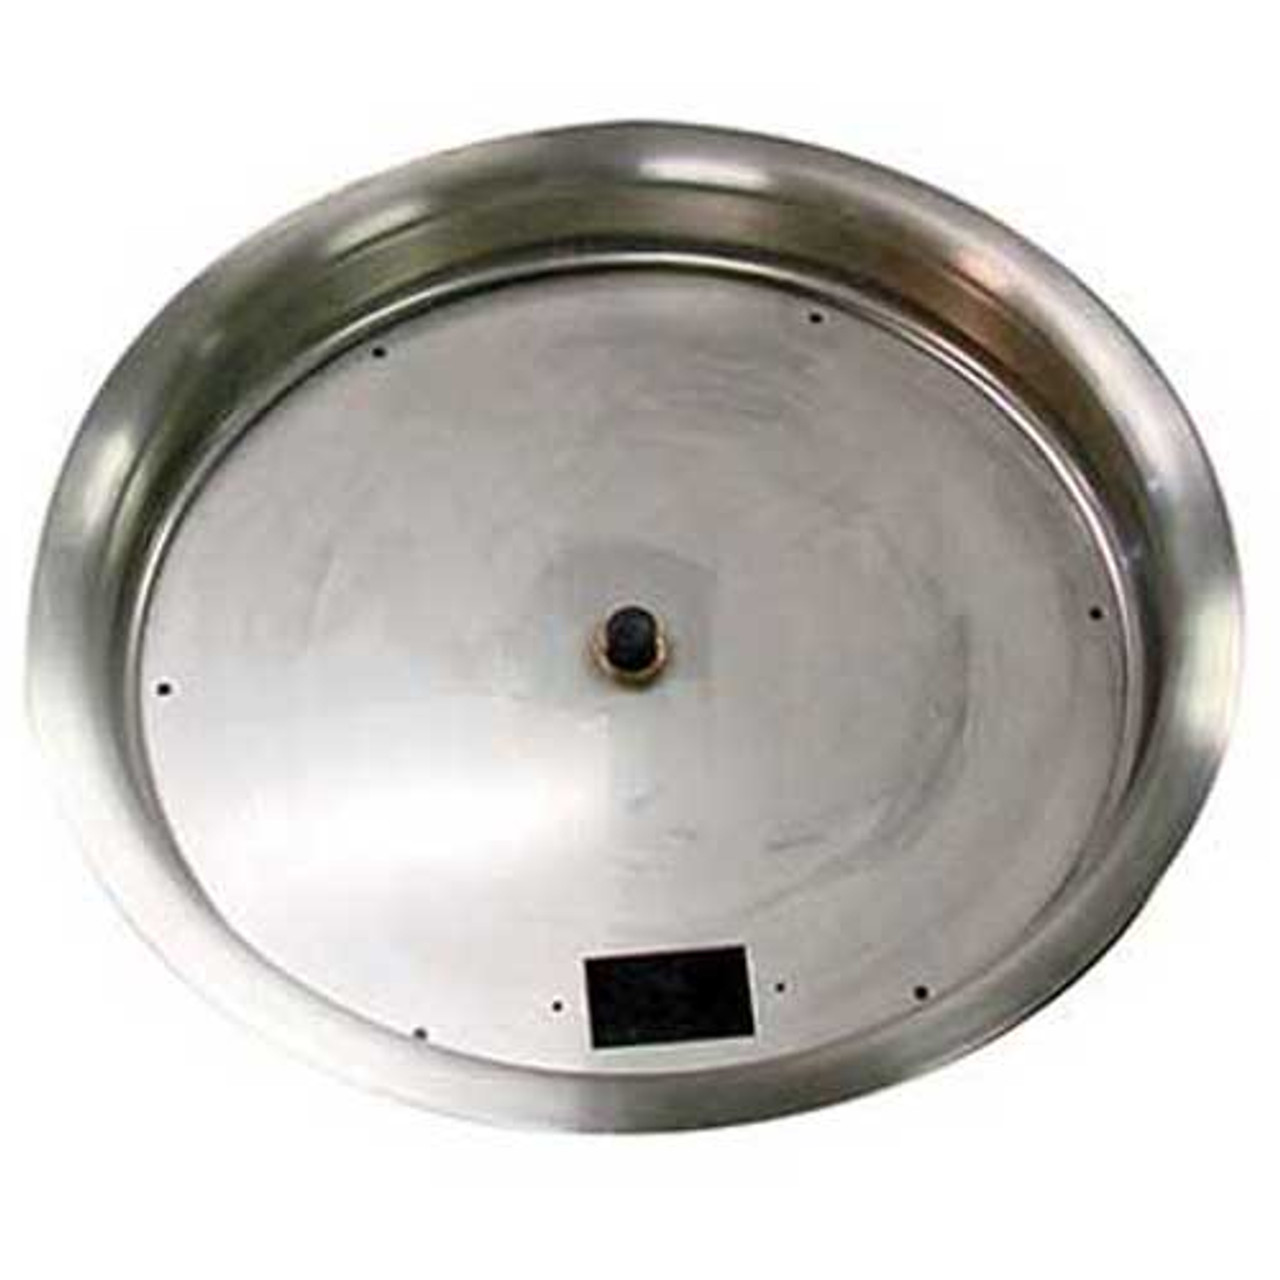 Hpc 31 Inch High Capacity Stainless Steel Firepit Bowl Pan 570 31hc Amsfireplace Com Outdoor Fire Patio Outdoor Firepits Build Your Own Fire Pit Outdoor Gas Burner Parts Outdoor Fire